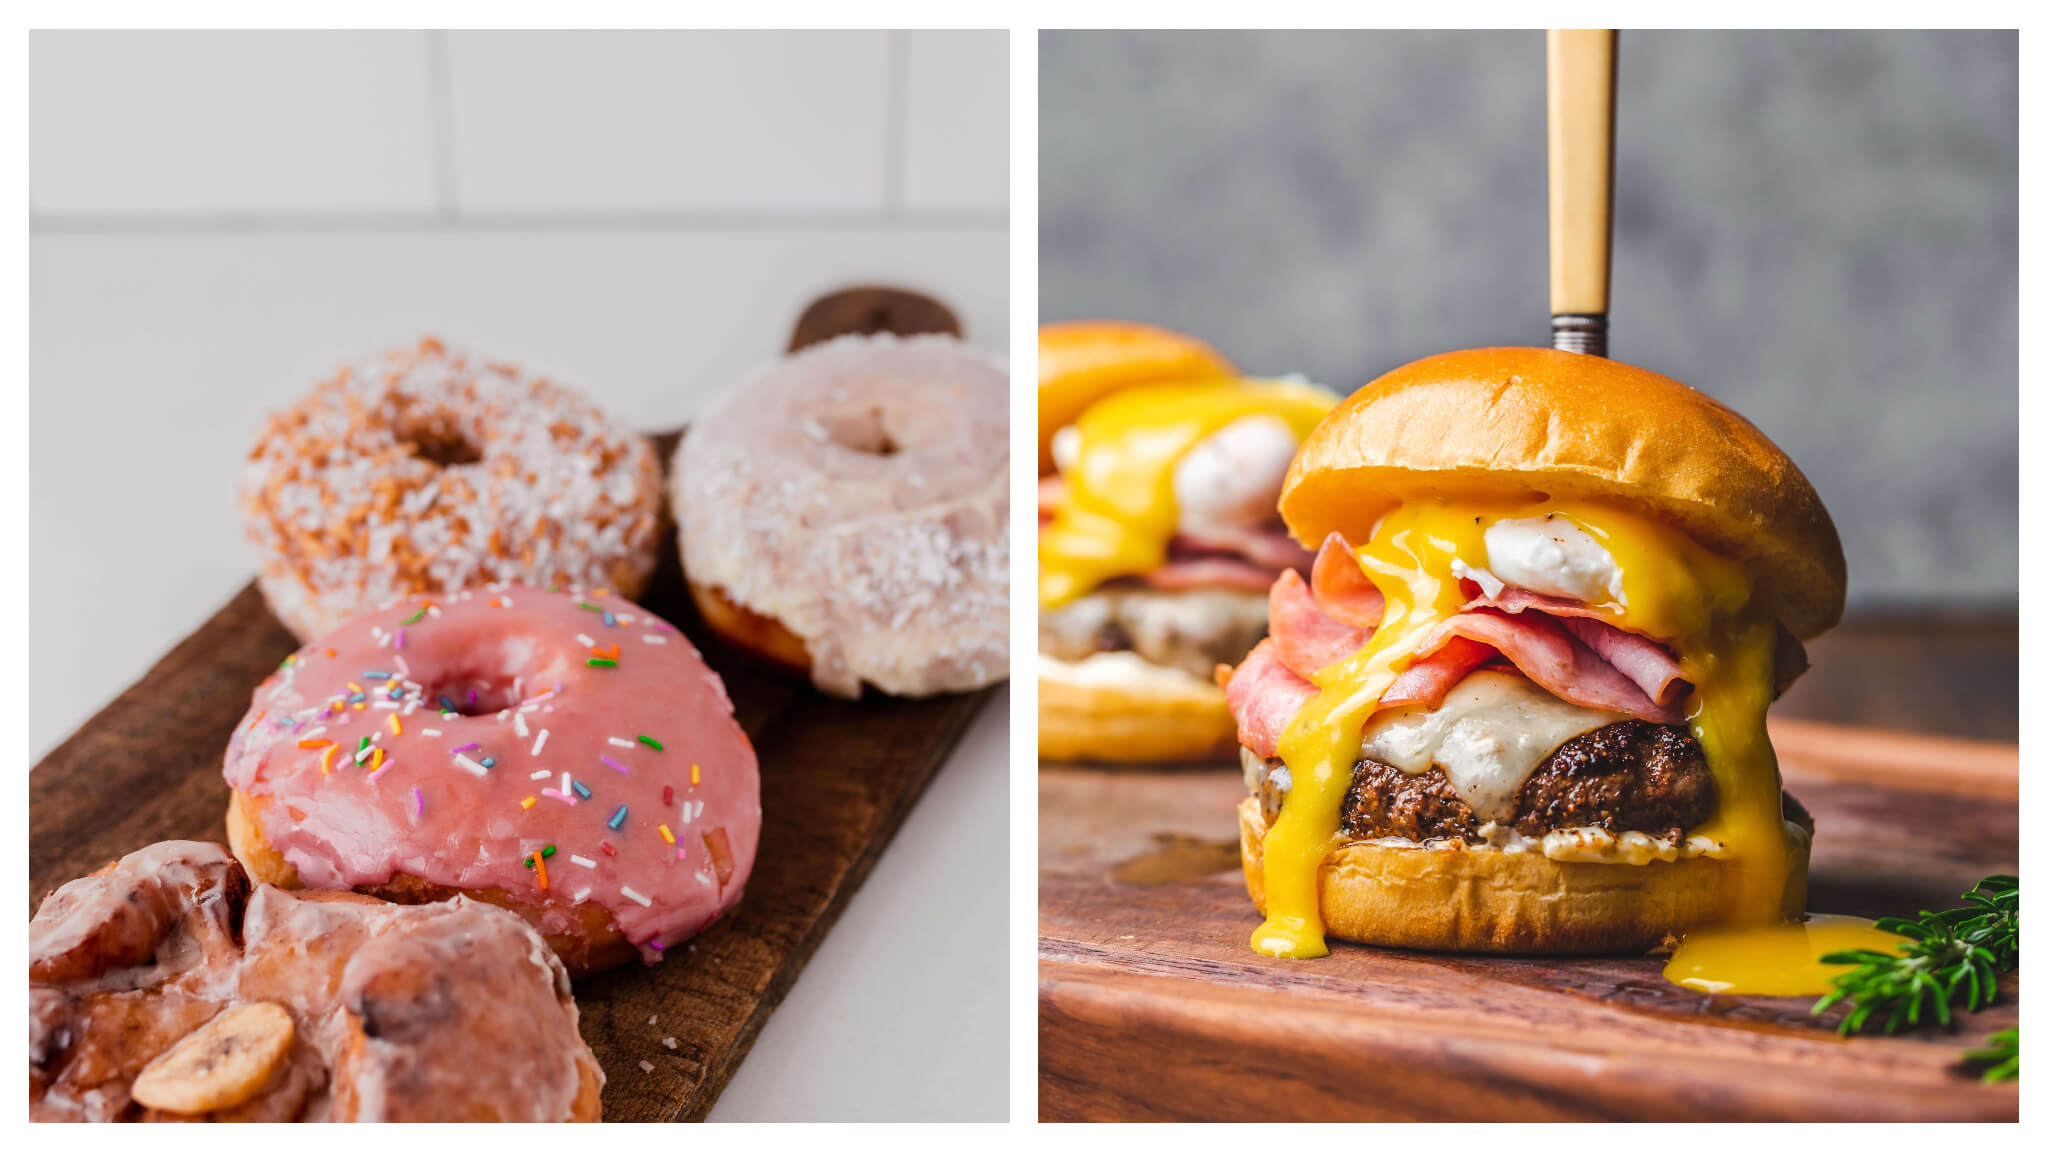 Left, doughnuts covered in pink icing. Right, a burger oozing melted cheese is one of the comfort foods to eat.